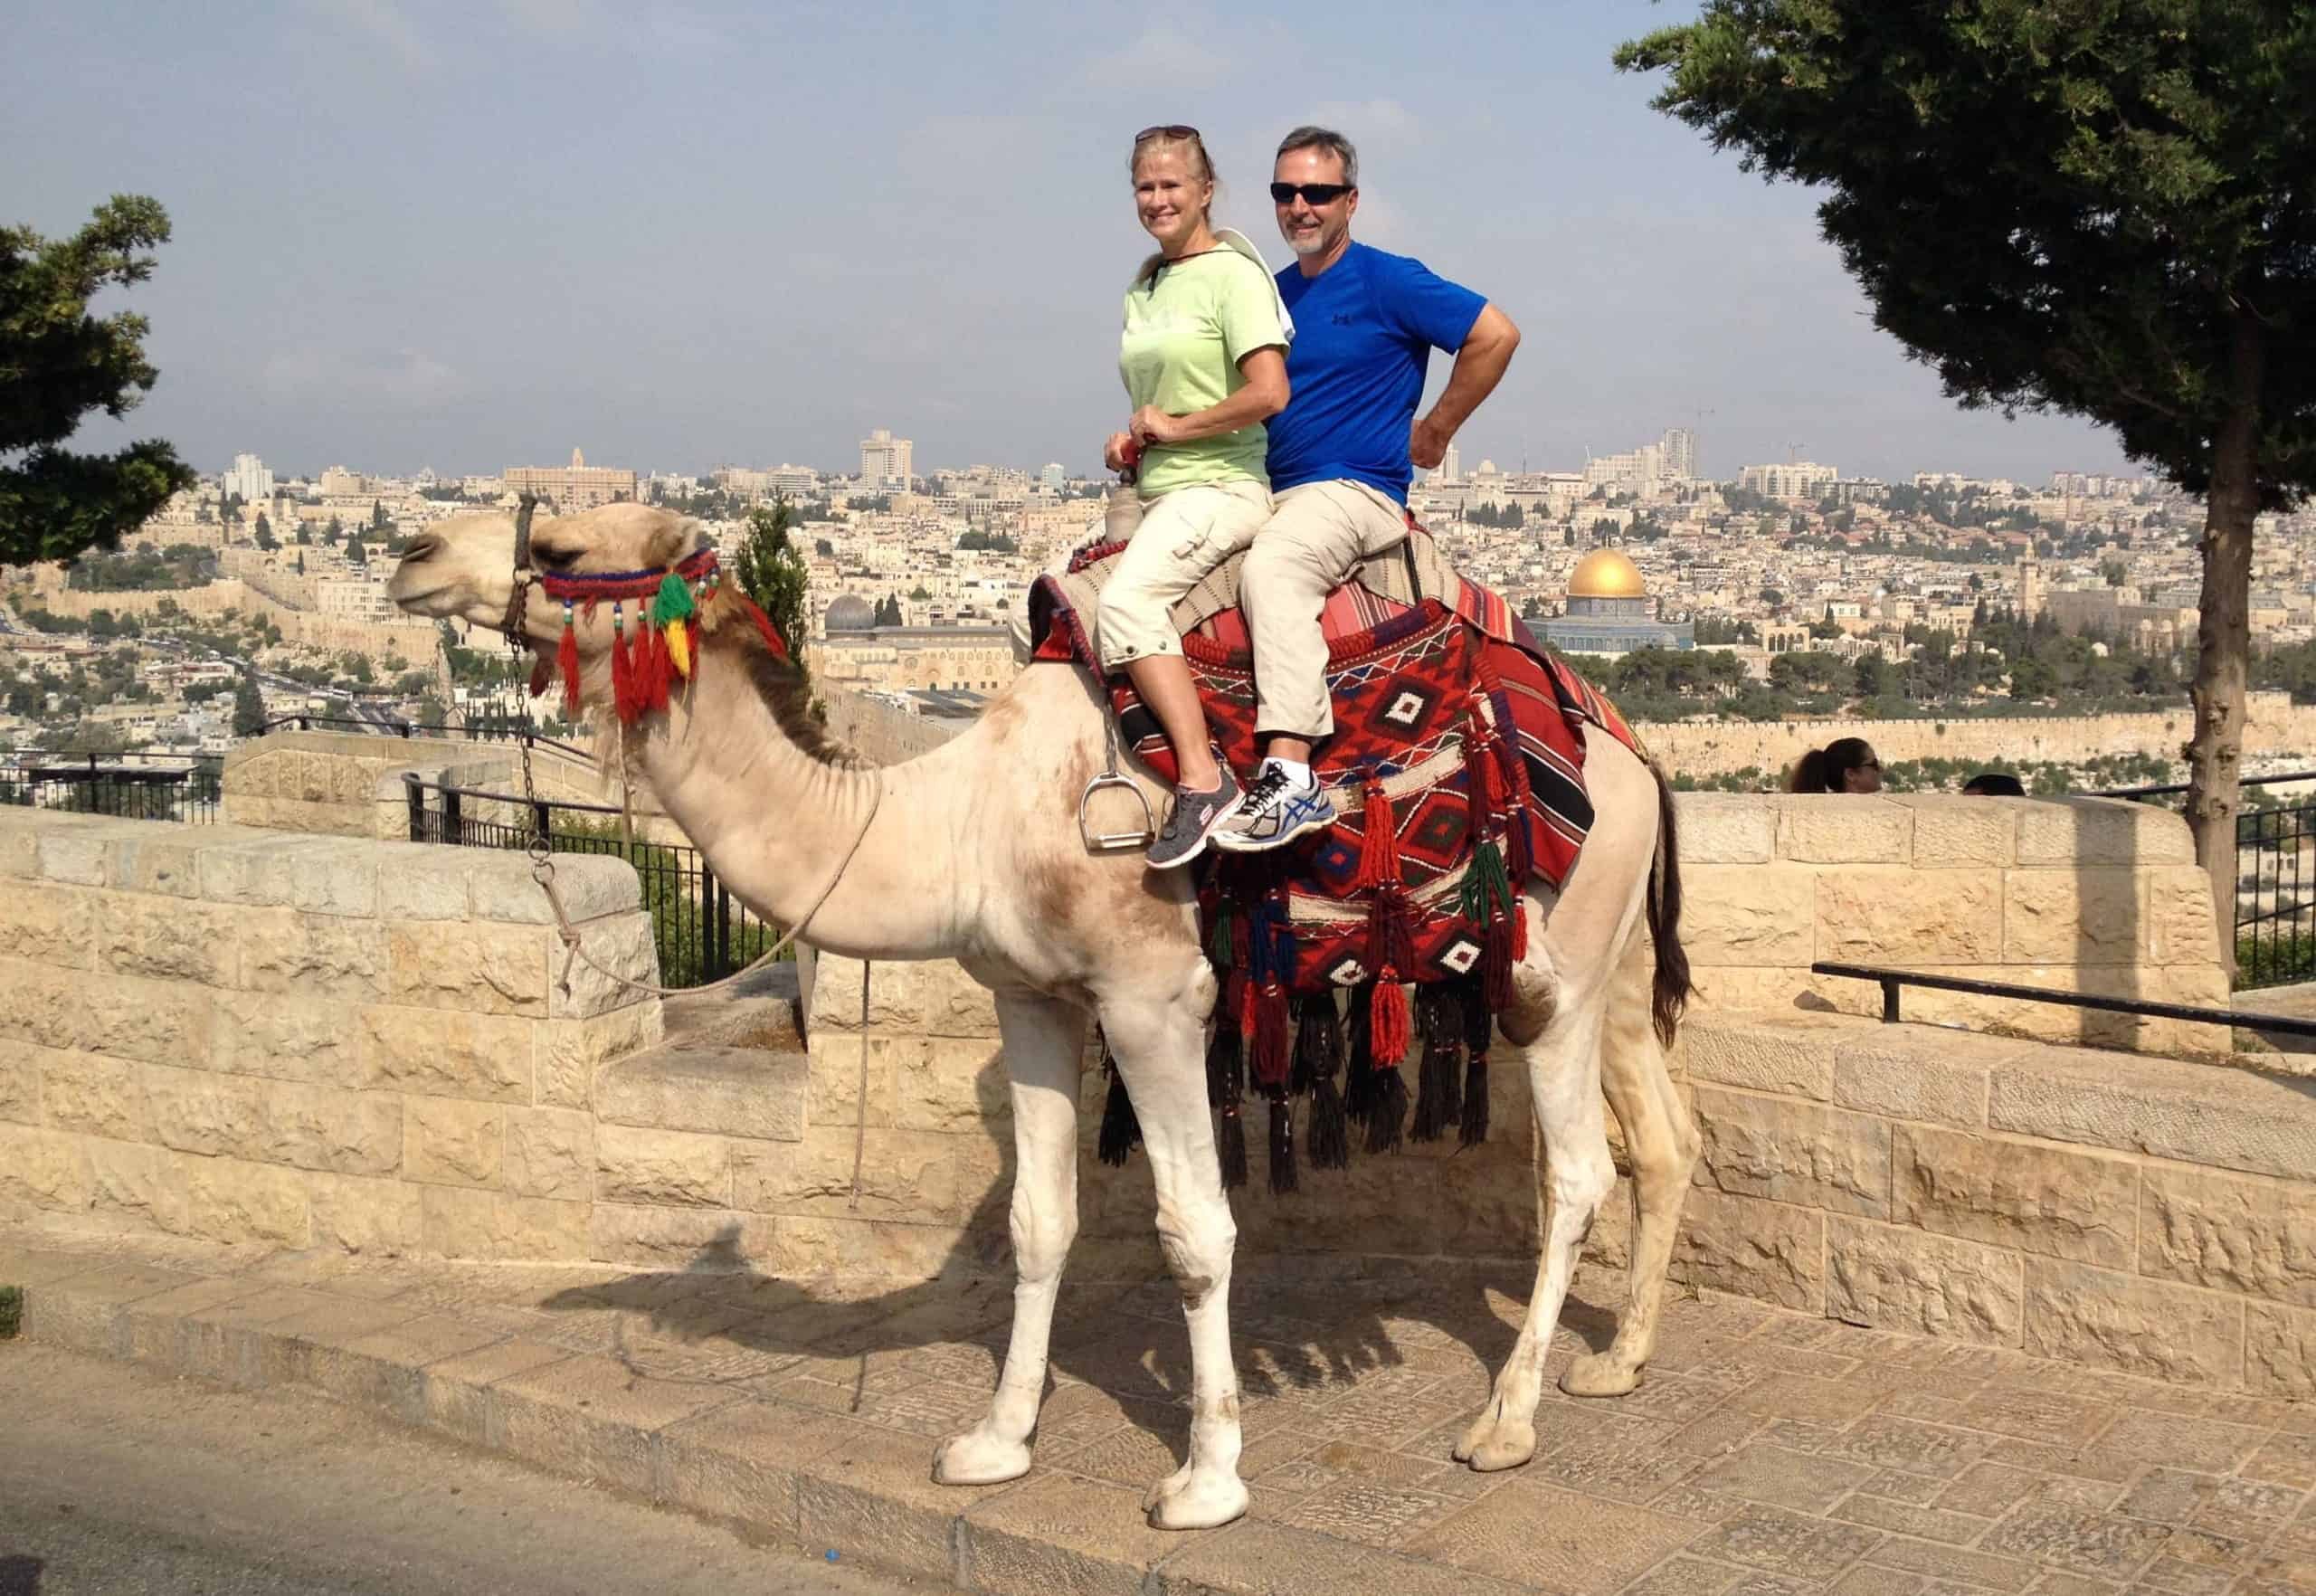 Riding a camel on the Mount of Olives